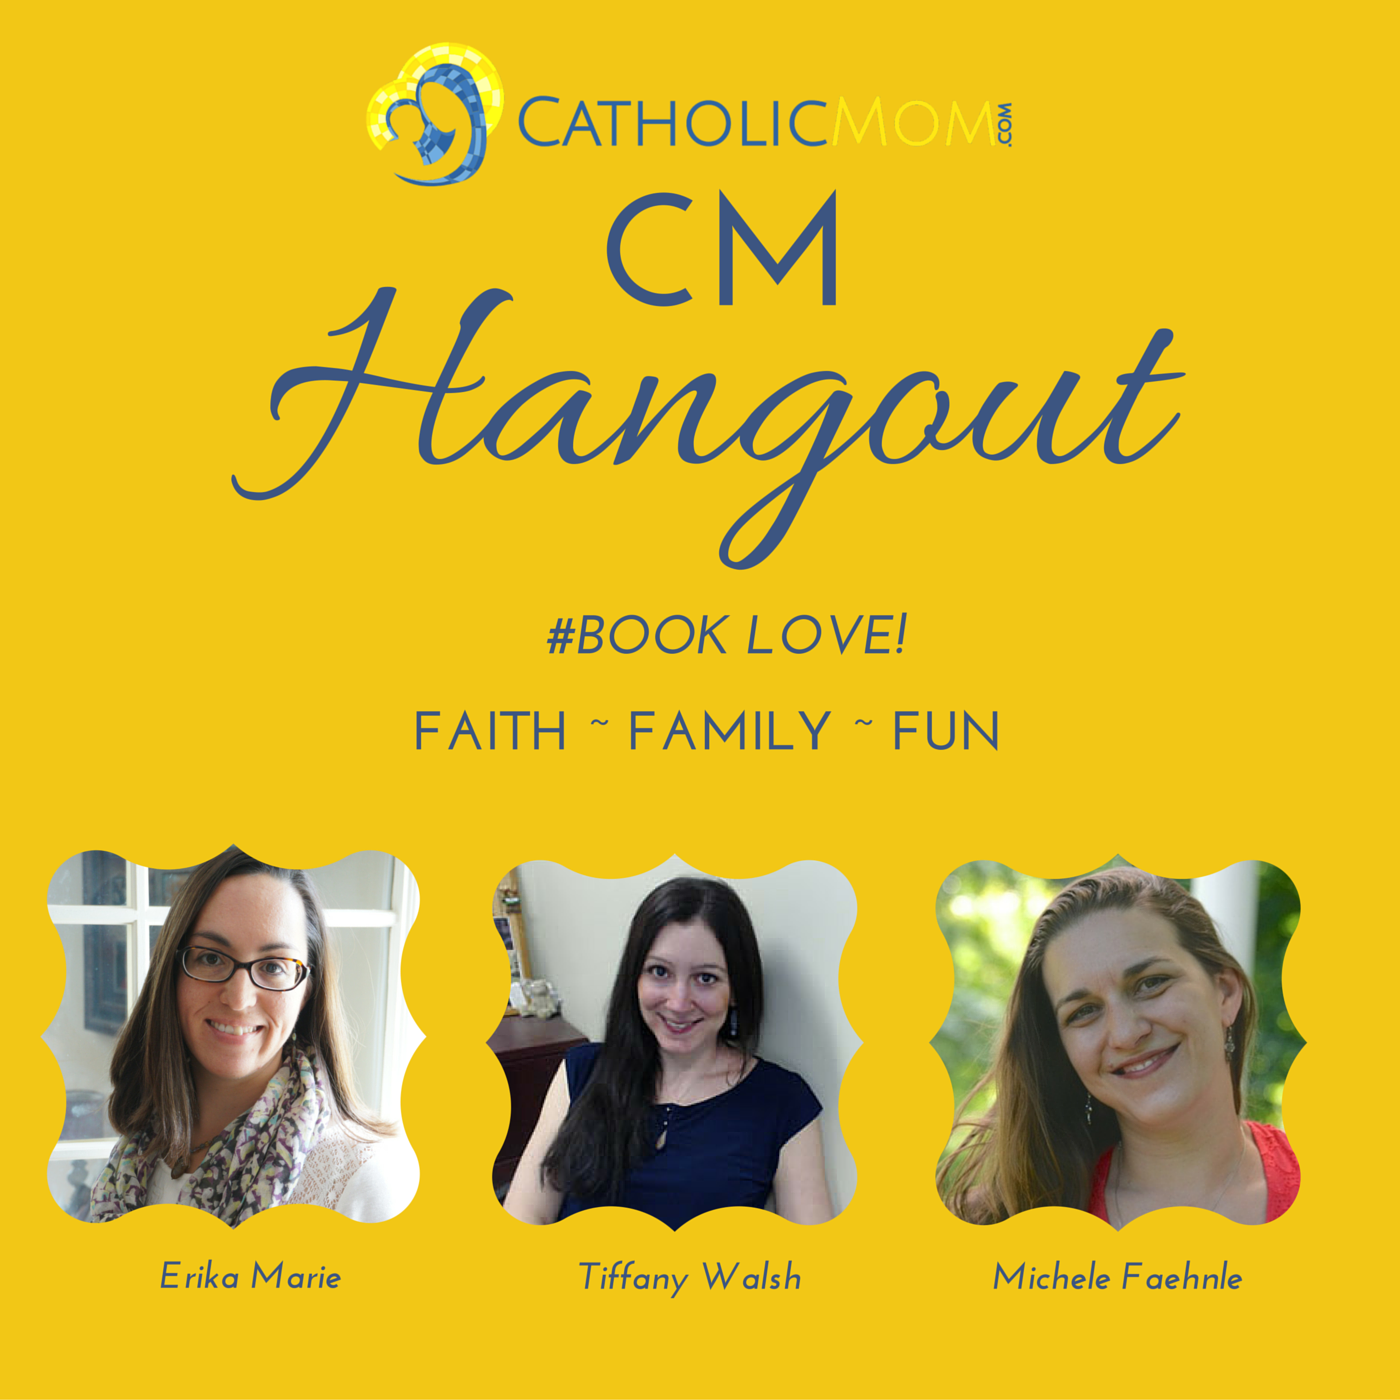 CM Hangout #23: Book Love! Catholic Moms' Favorite Books